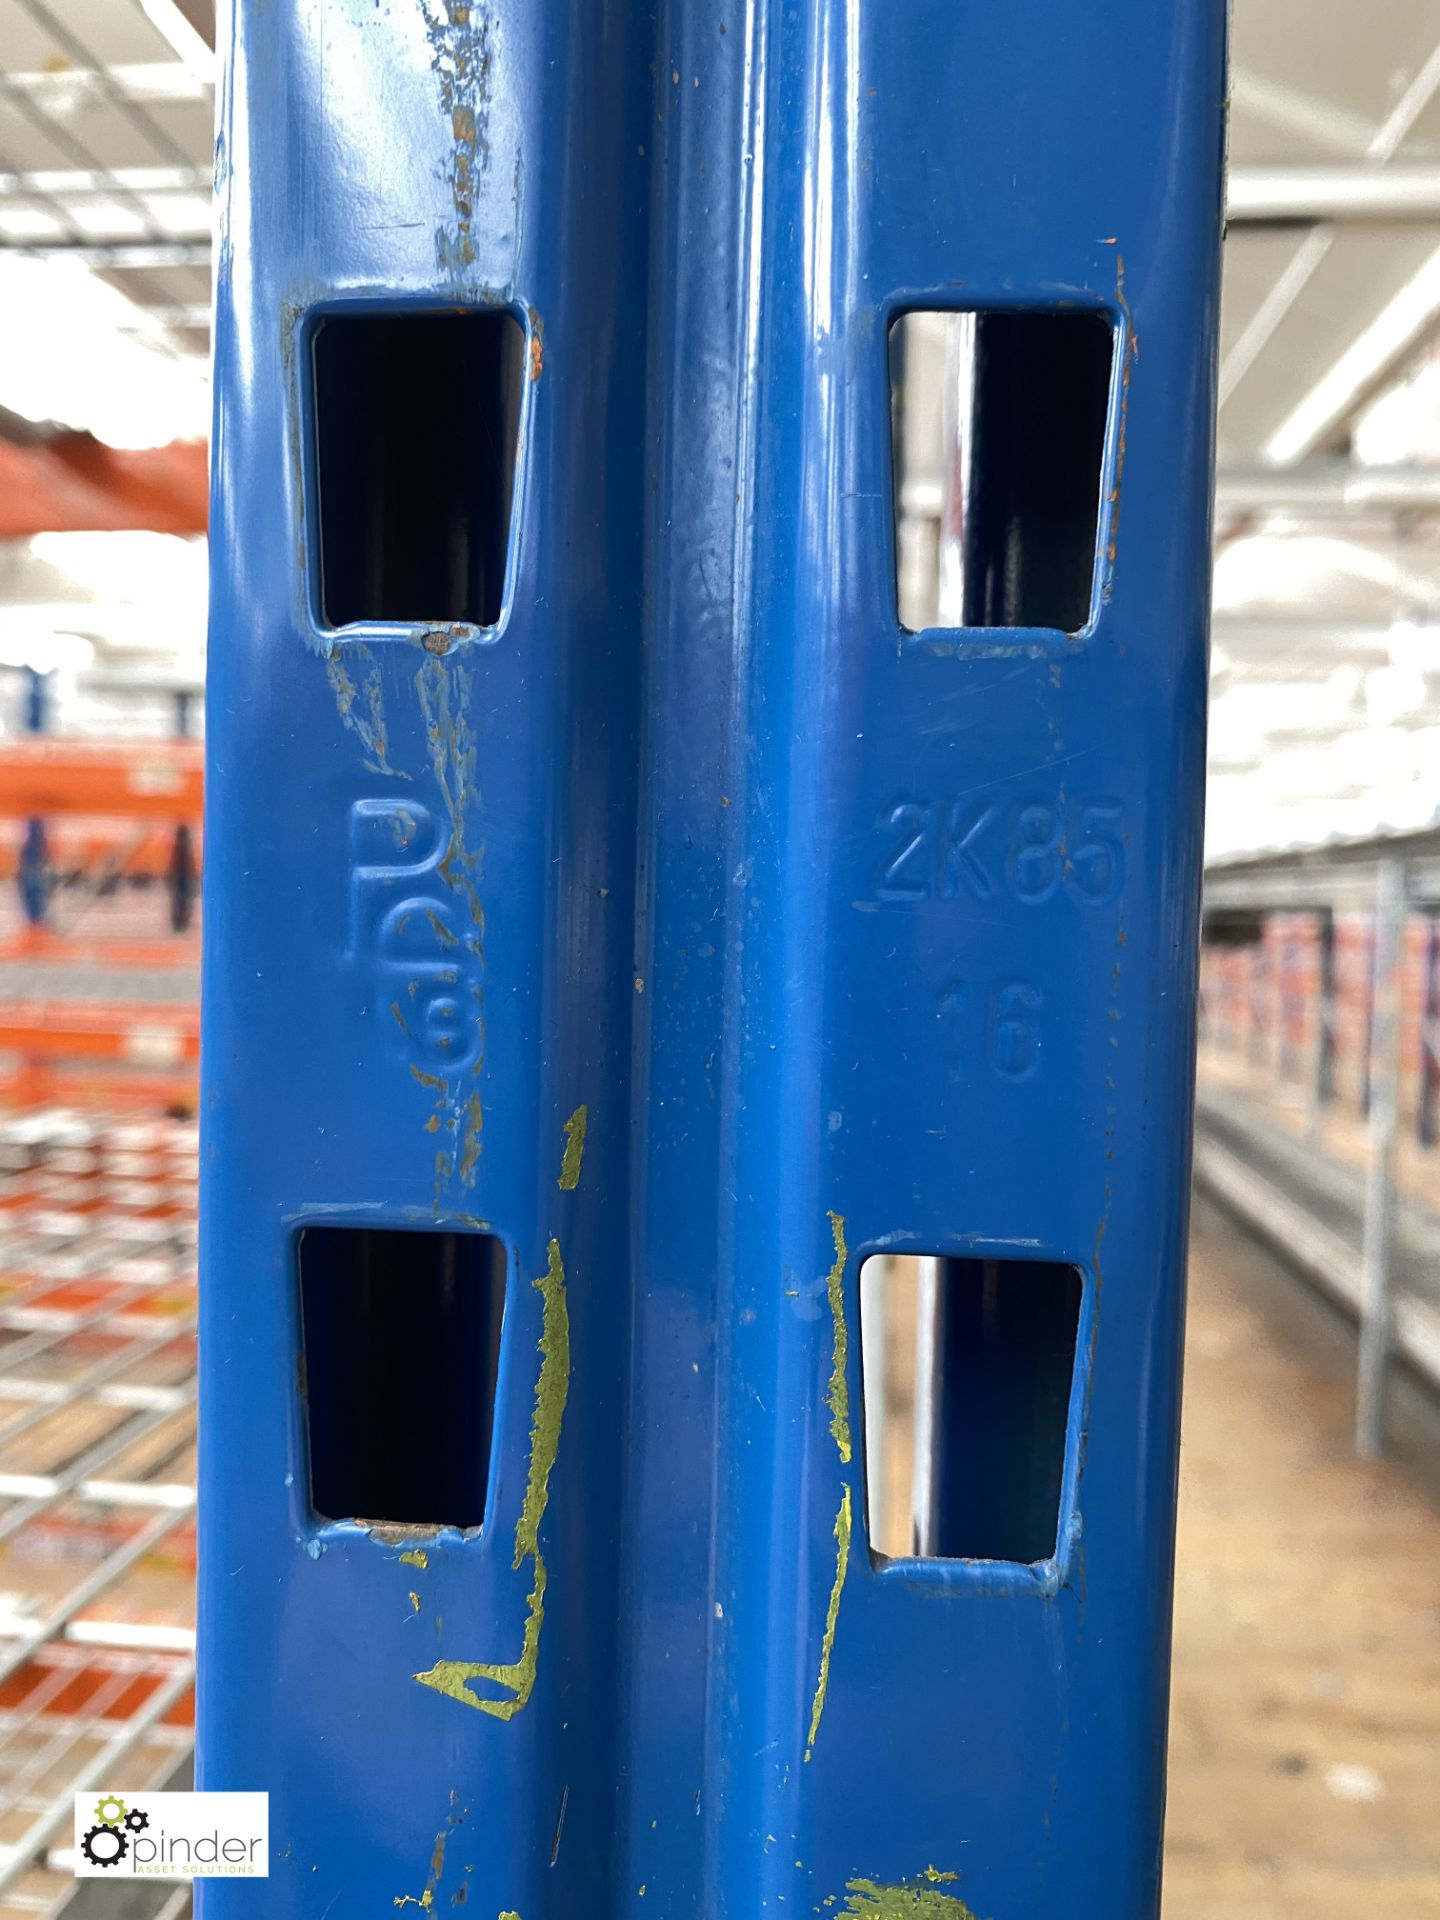 8 bays PSS 2K85 16 boltless Stock Racking, comprising 9 uprights 2400mm x 1200mm, 64 beams 2700mm, - Image 4 of 4